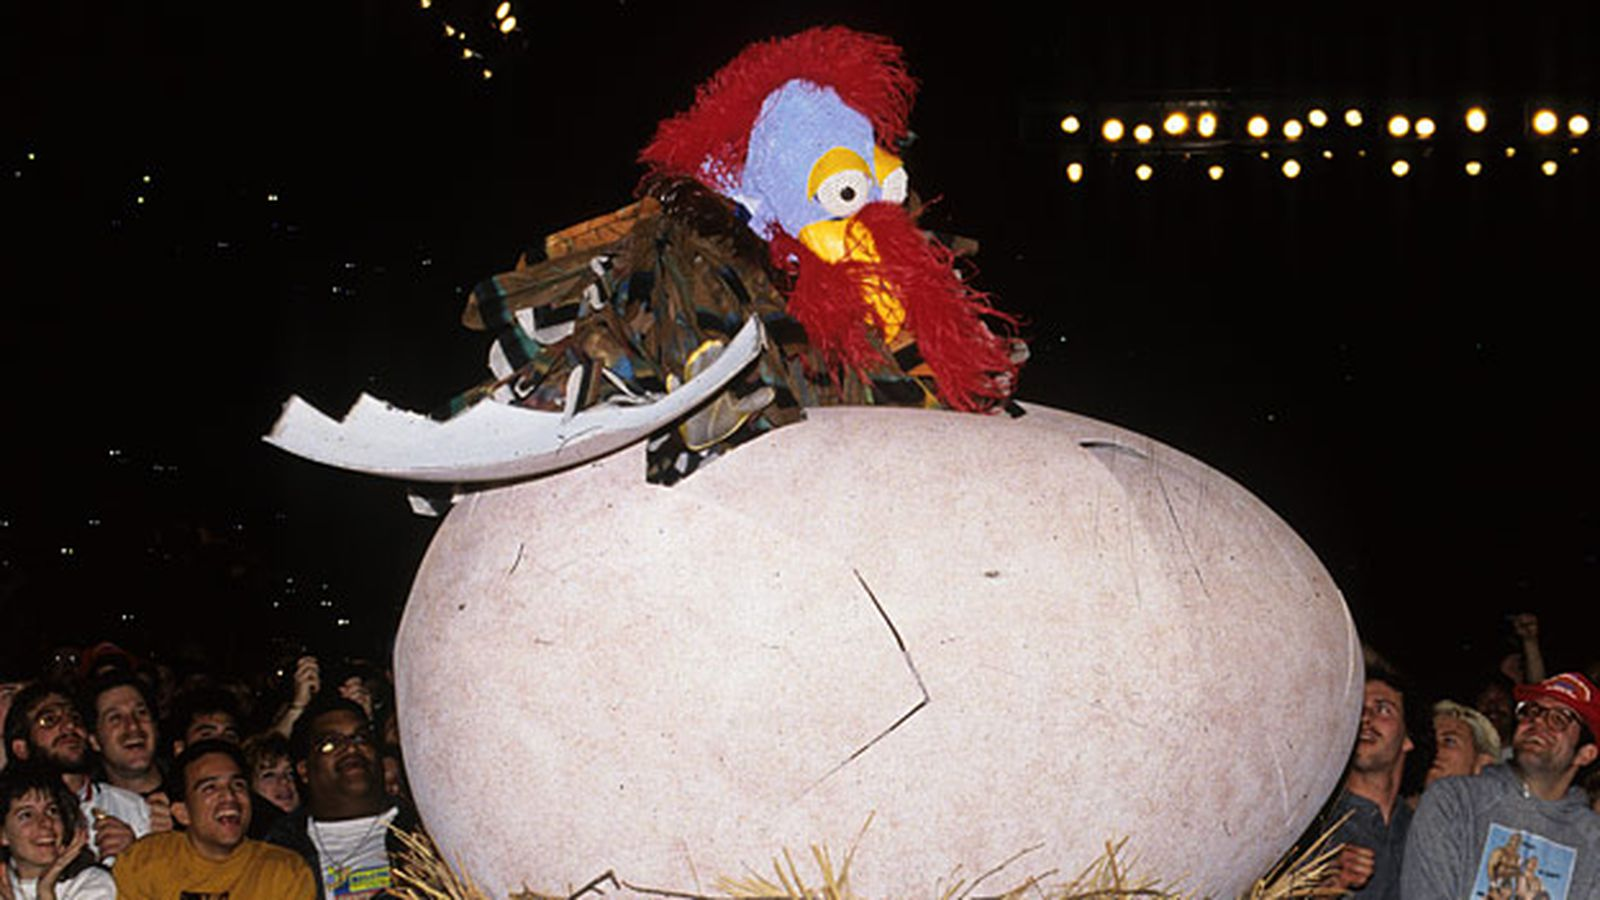 The Gobbledy Gooker debuts at Survivor Series 1990. 'That was (not) awesome!' (clap clap clapclapclap)